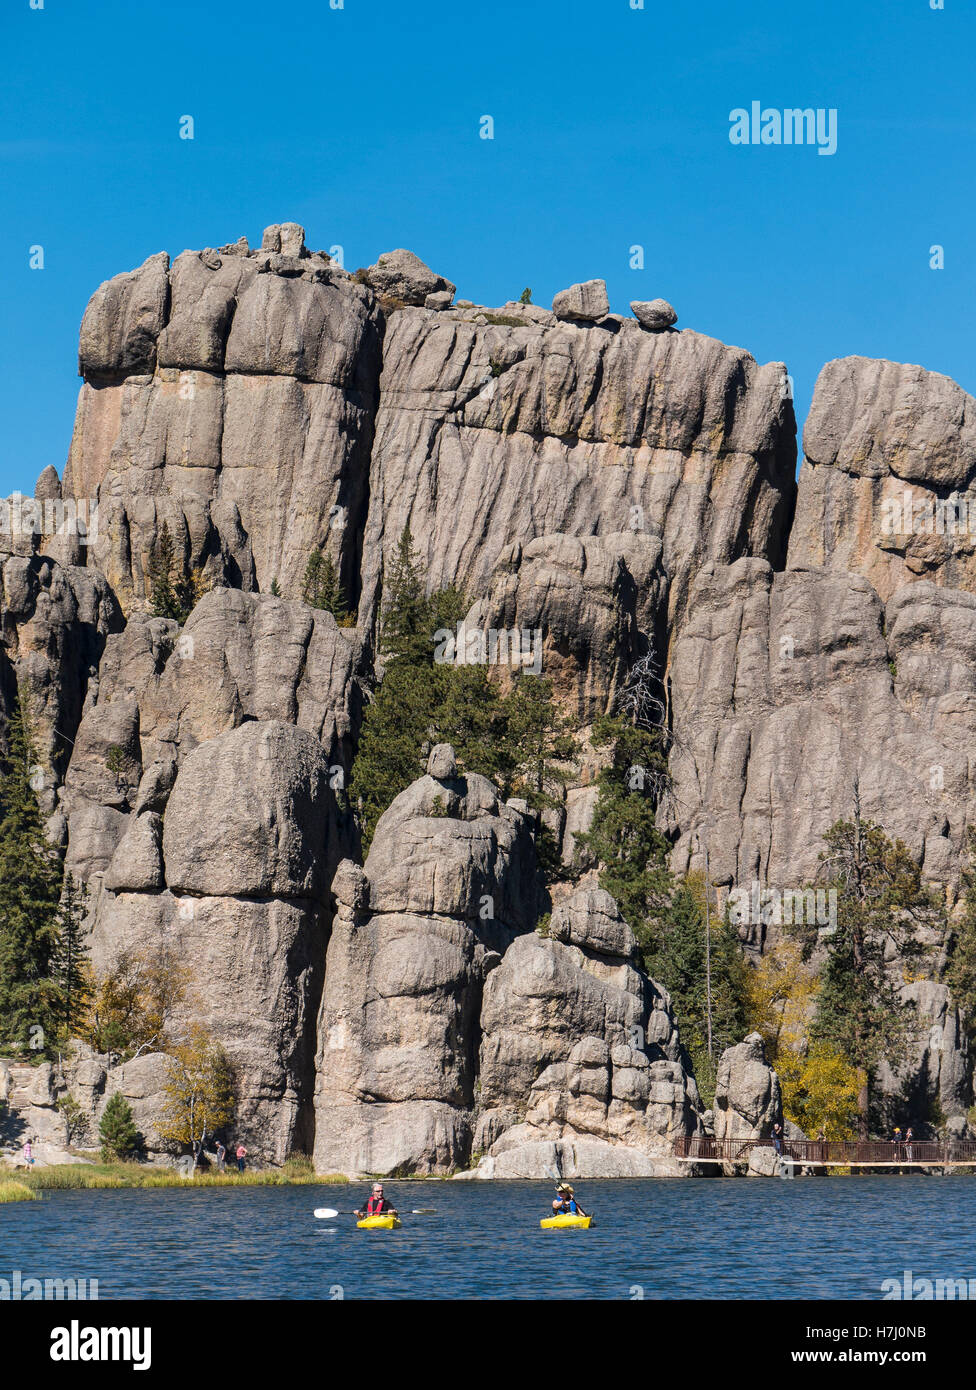 Couple paddle kayaks, Sylvan Lake, Needles Highway, Custer State Park, South Dakota. - Stock Image